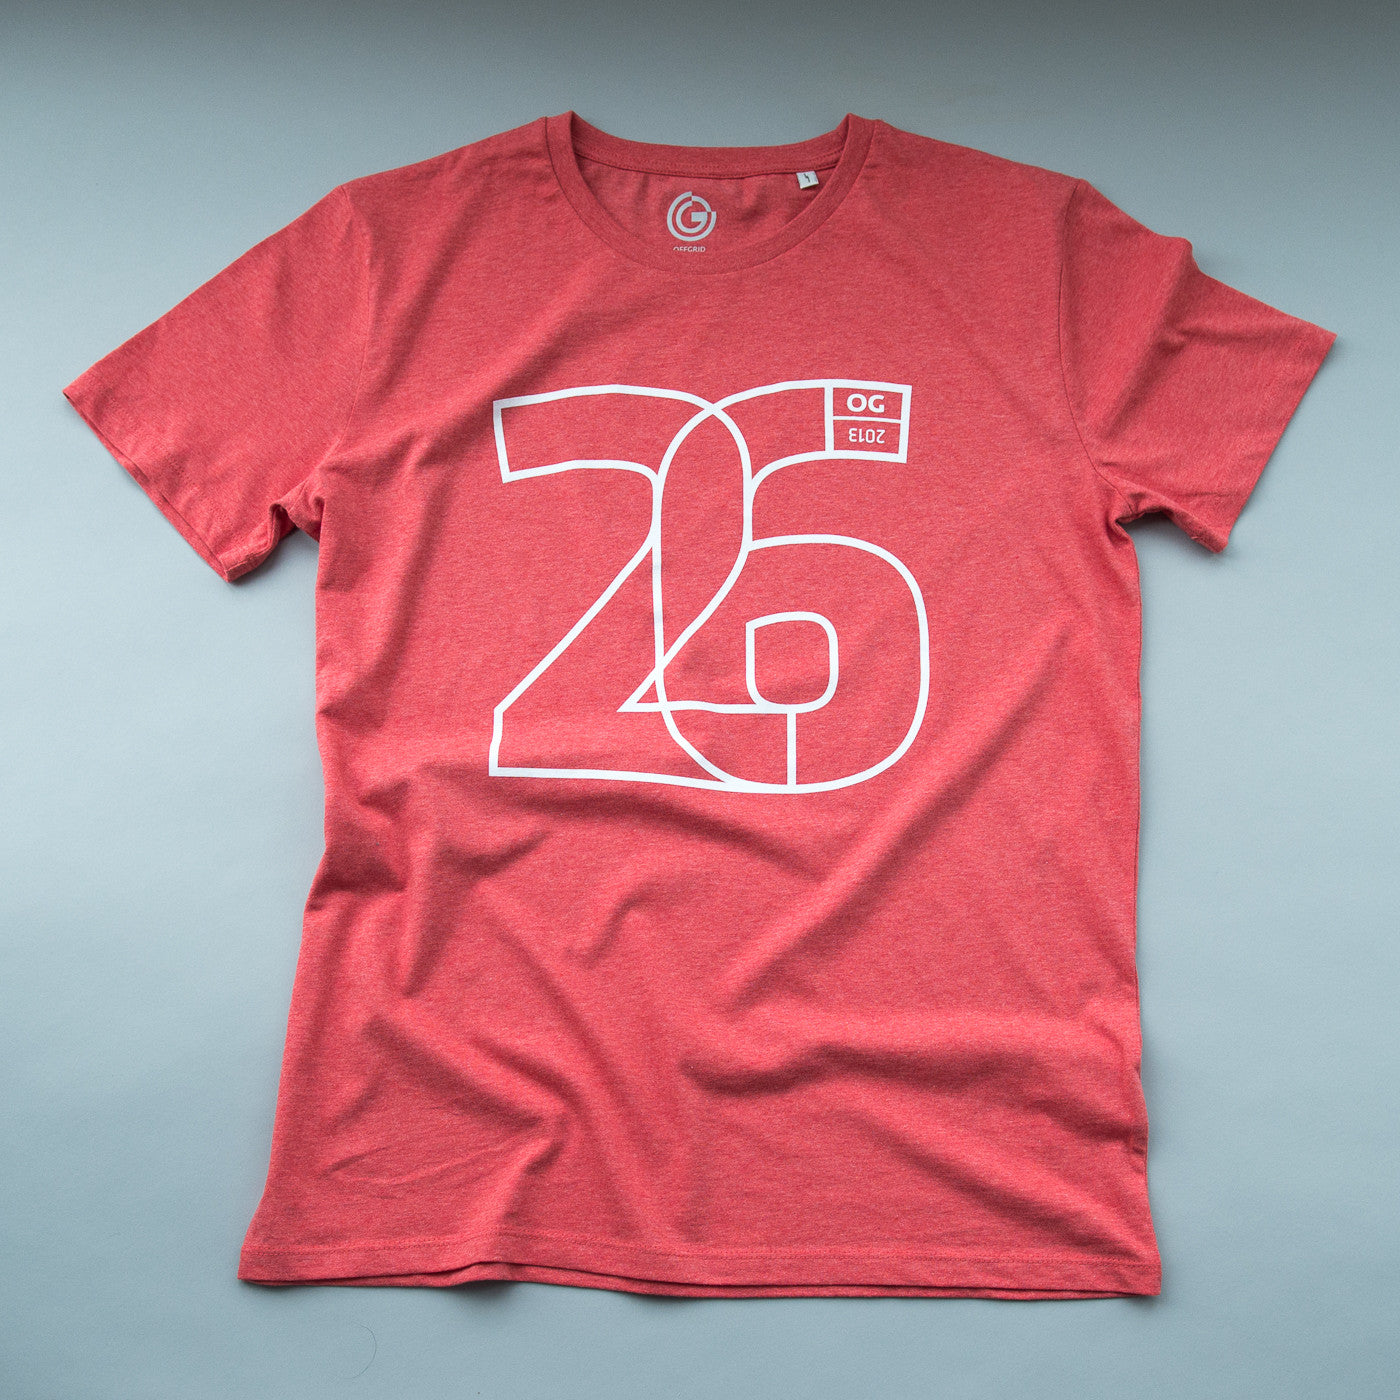 26 Mens Organic Tee from OFFGRID Clothing